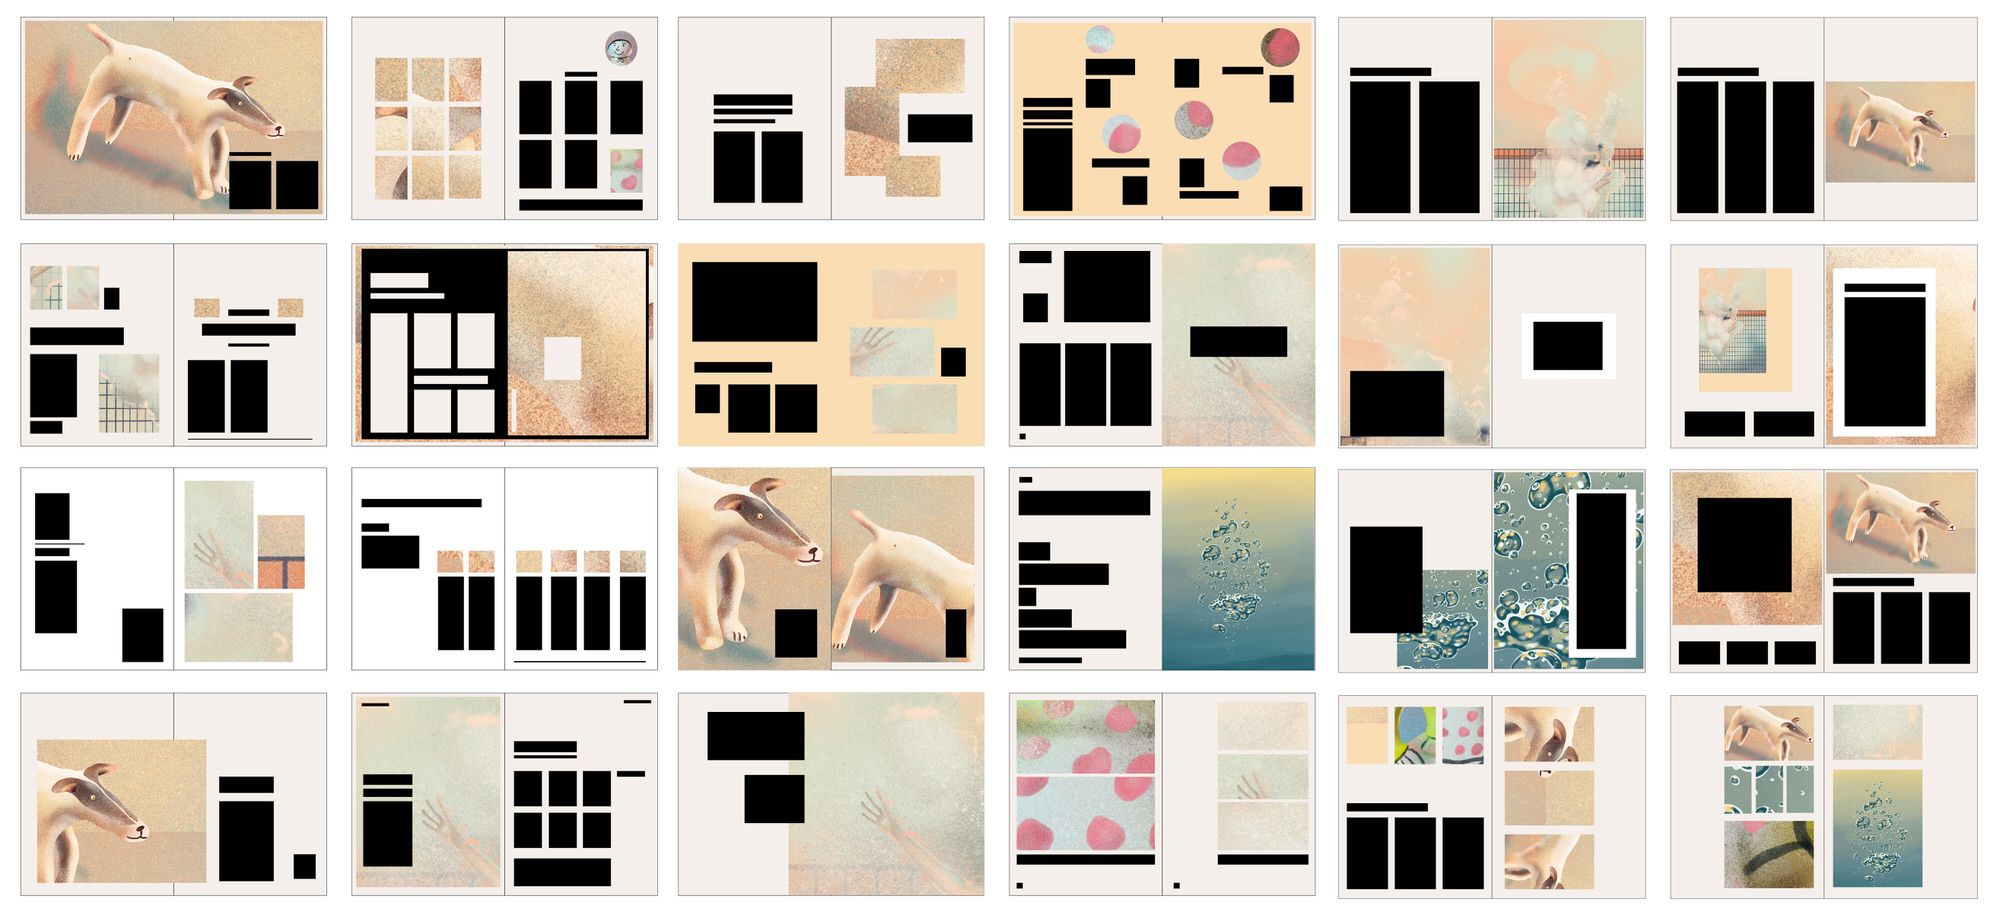 24 thumbnails showing different design layout experiments using Ida Henrich's own illustrations